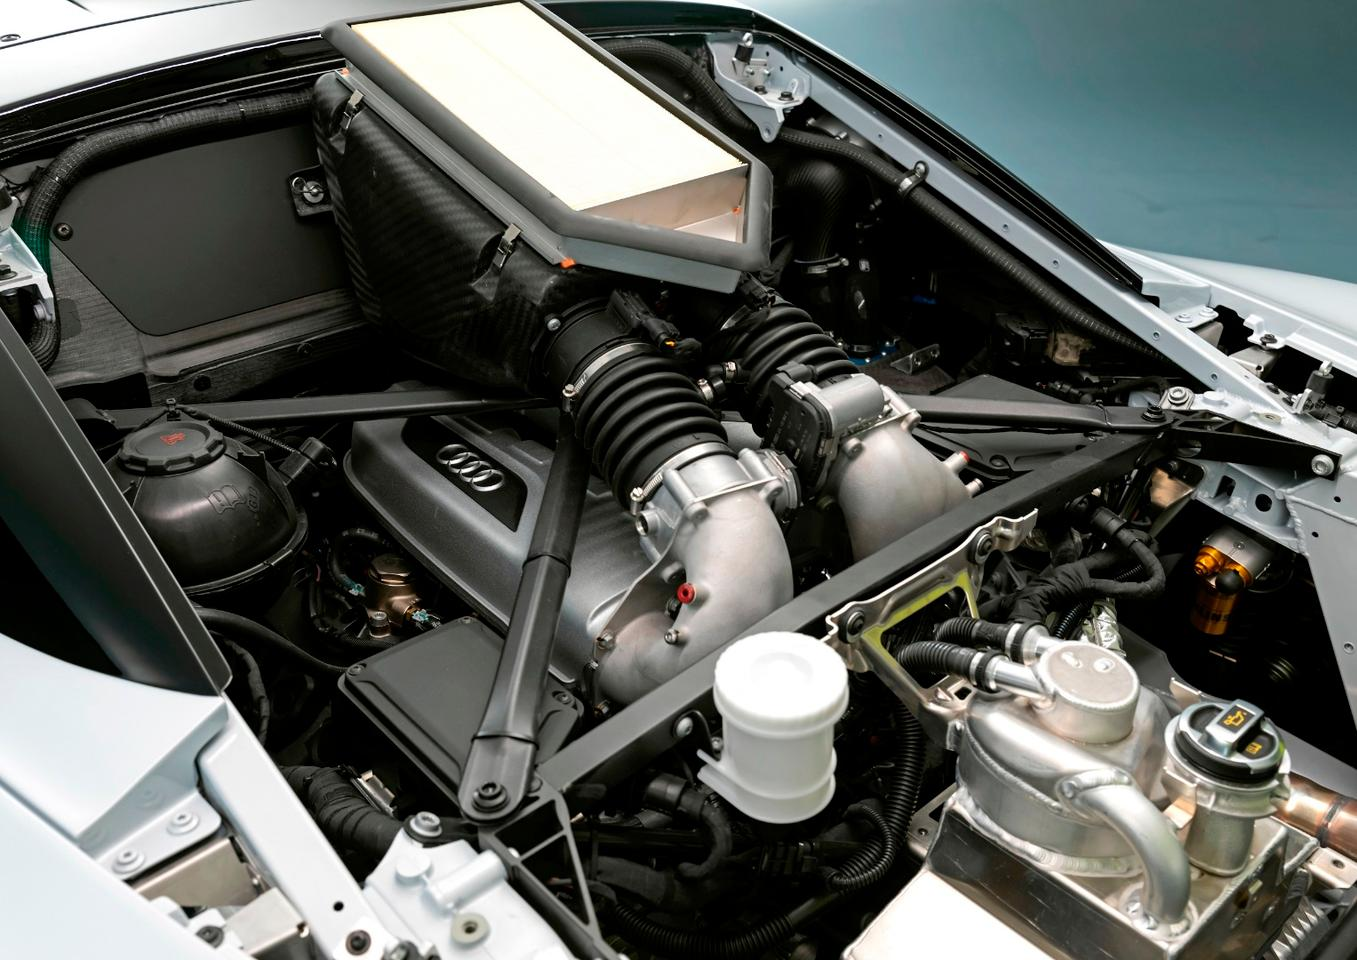 Naturally aspirated 640-horsepower V10 engine